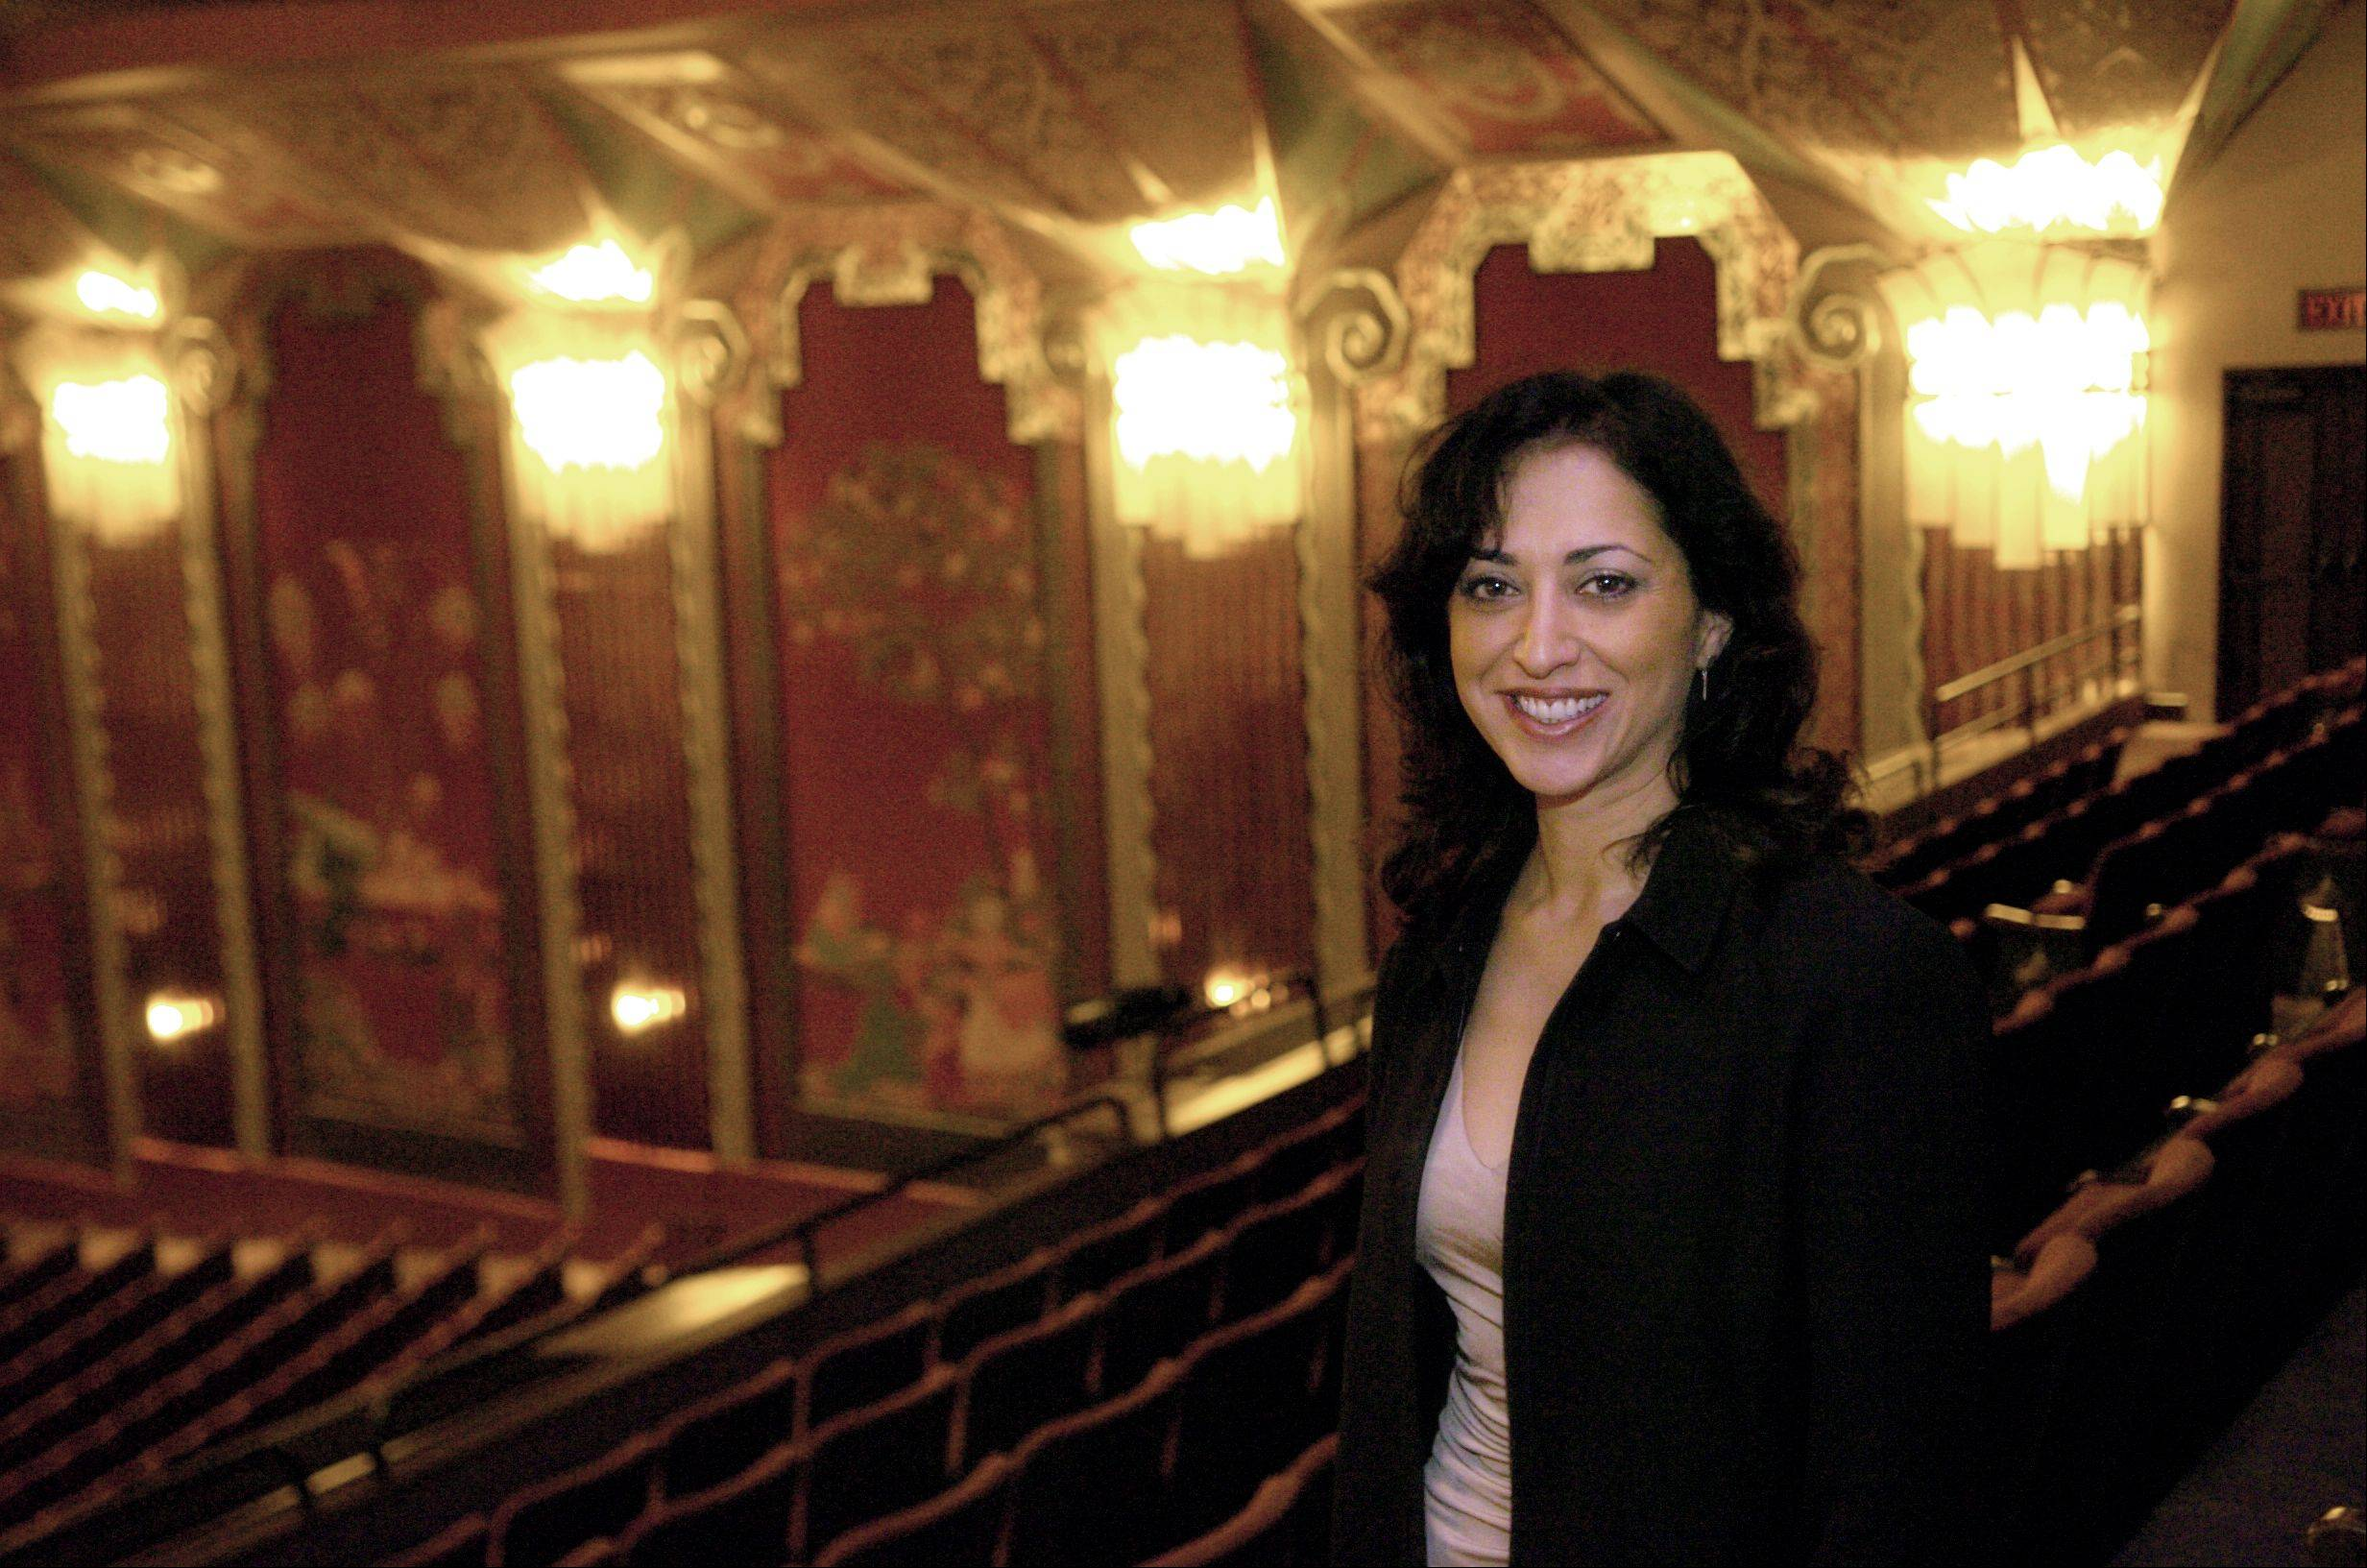 The new interim director of College of DuPage's McAninch Arts Center, Diana Martinez, also has served stints with Chicago's Second City, Pleasant Run in St. Charles and, as shown here, the Paramount Theatre in Aurora.